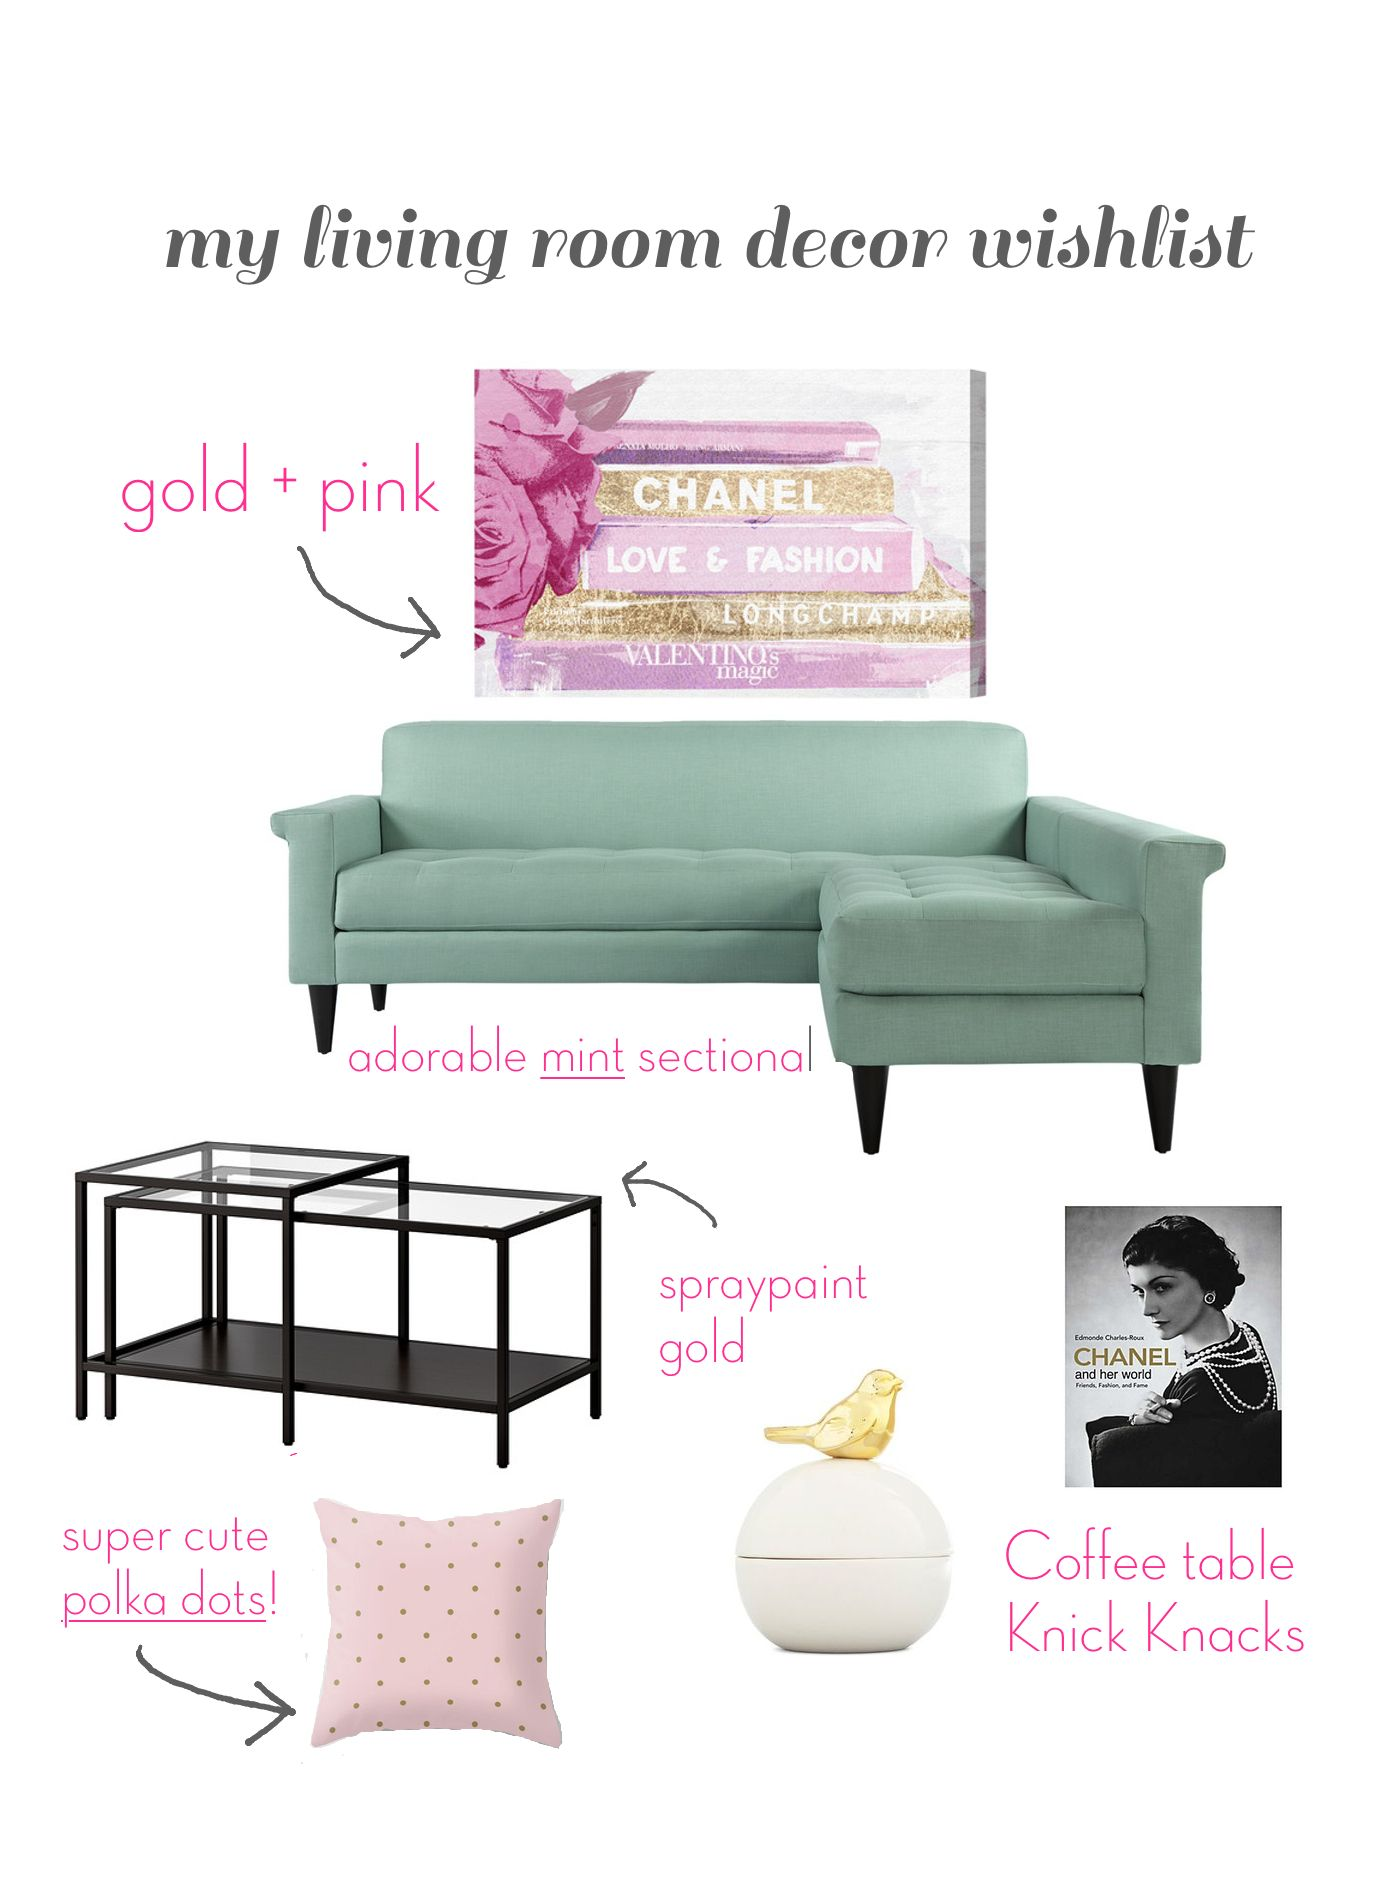 List of living room accessories - The Trendy Sparrow My Living Room Decor Wish List